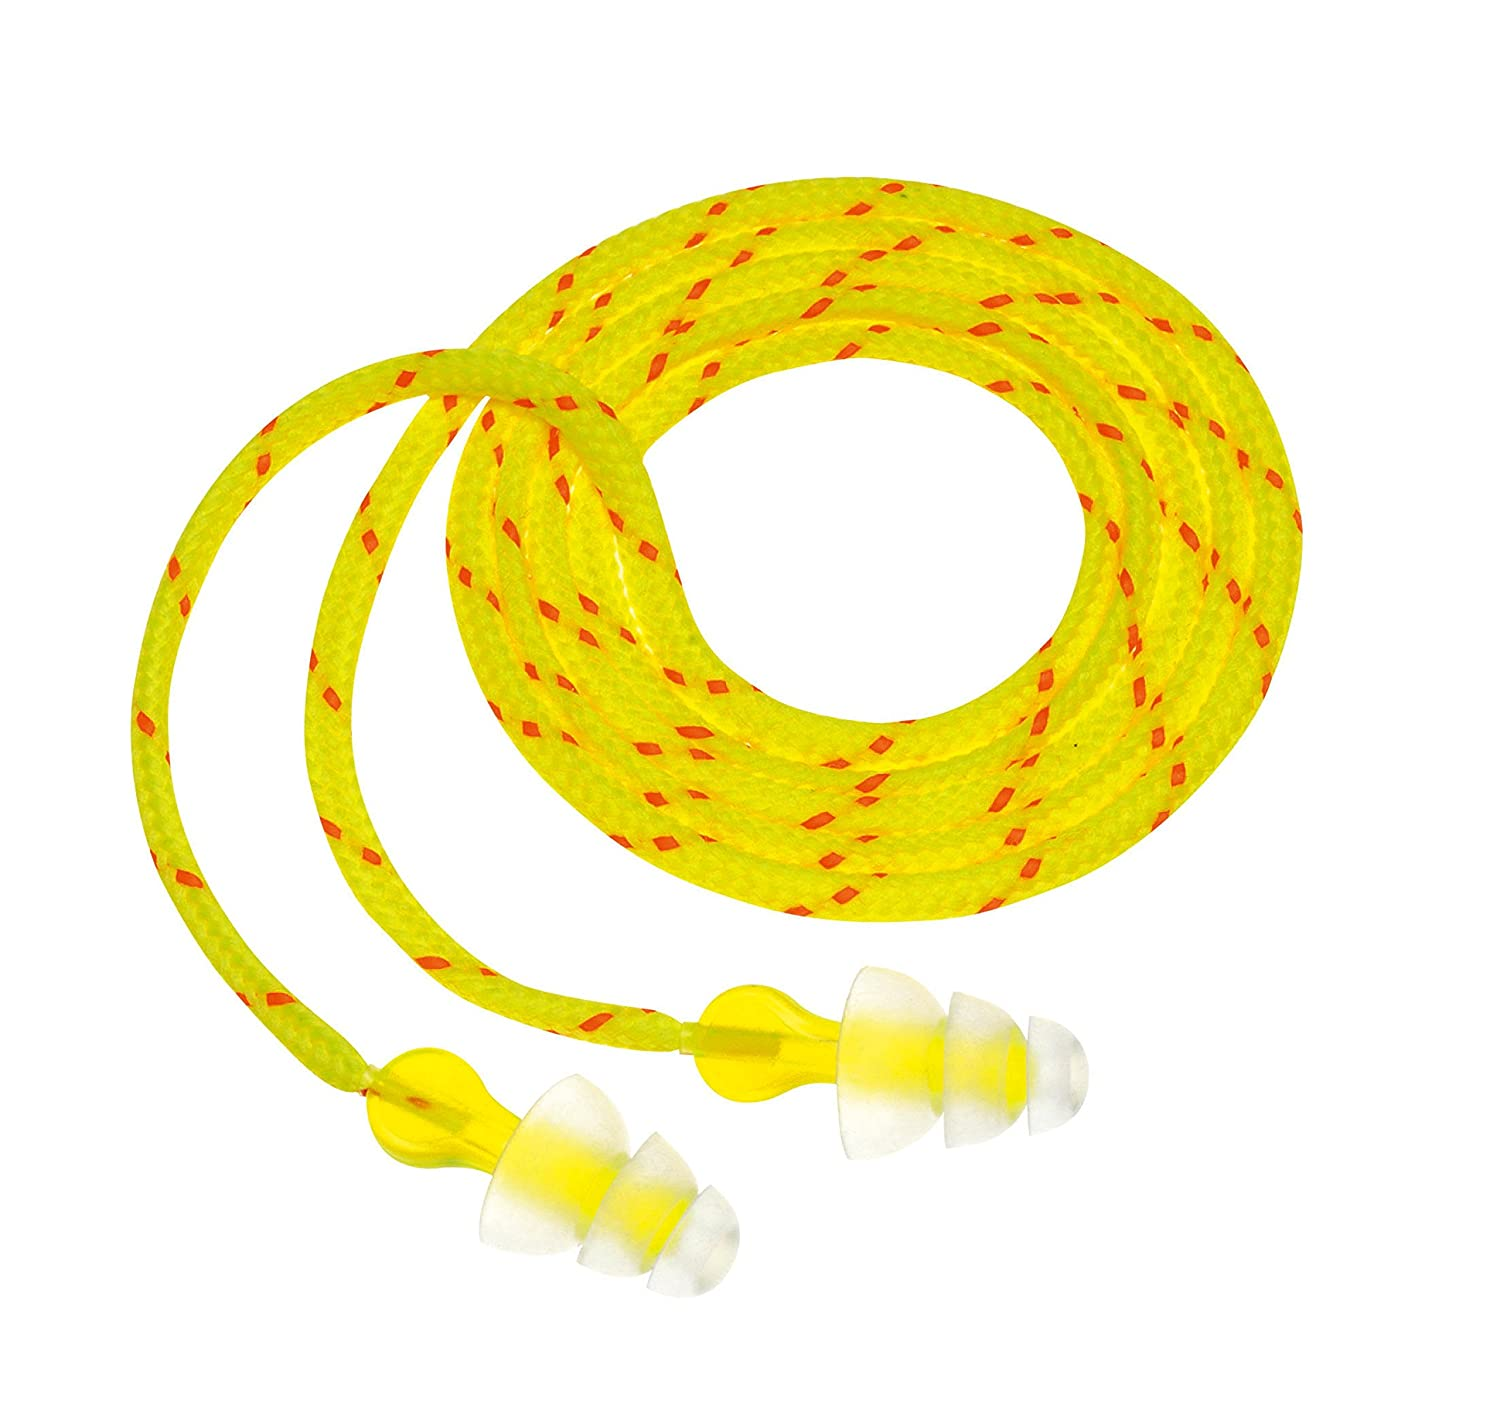 Image of 3M P3001 Multi-Flange Polymer Corded Earplugs Health and Household